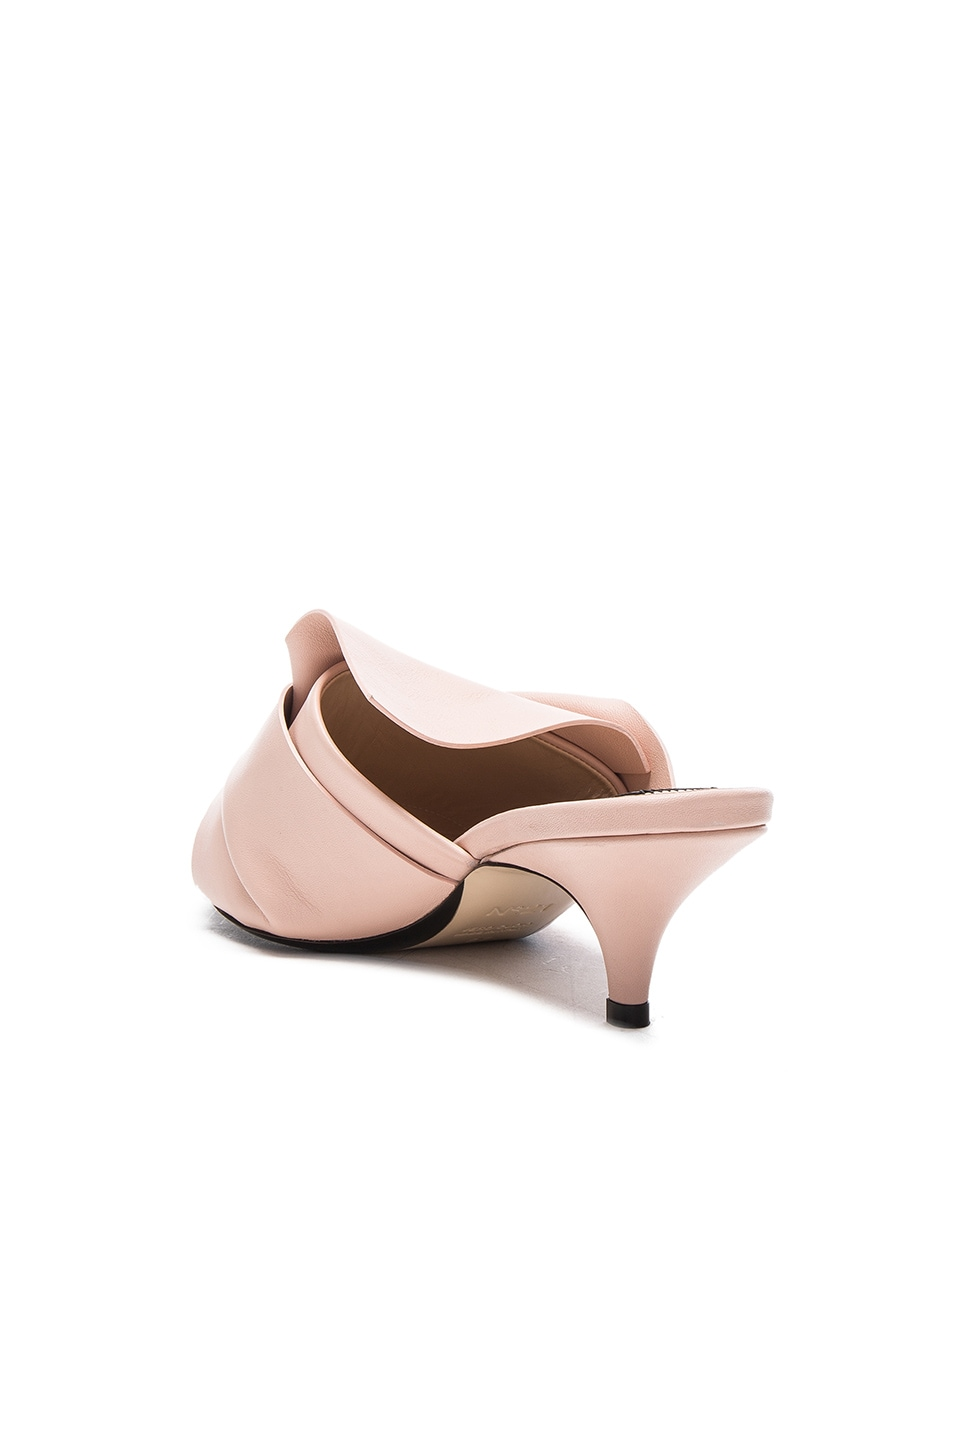 Image 3 of No. 21 Bow Kitten Heel Mule in Nude Leather